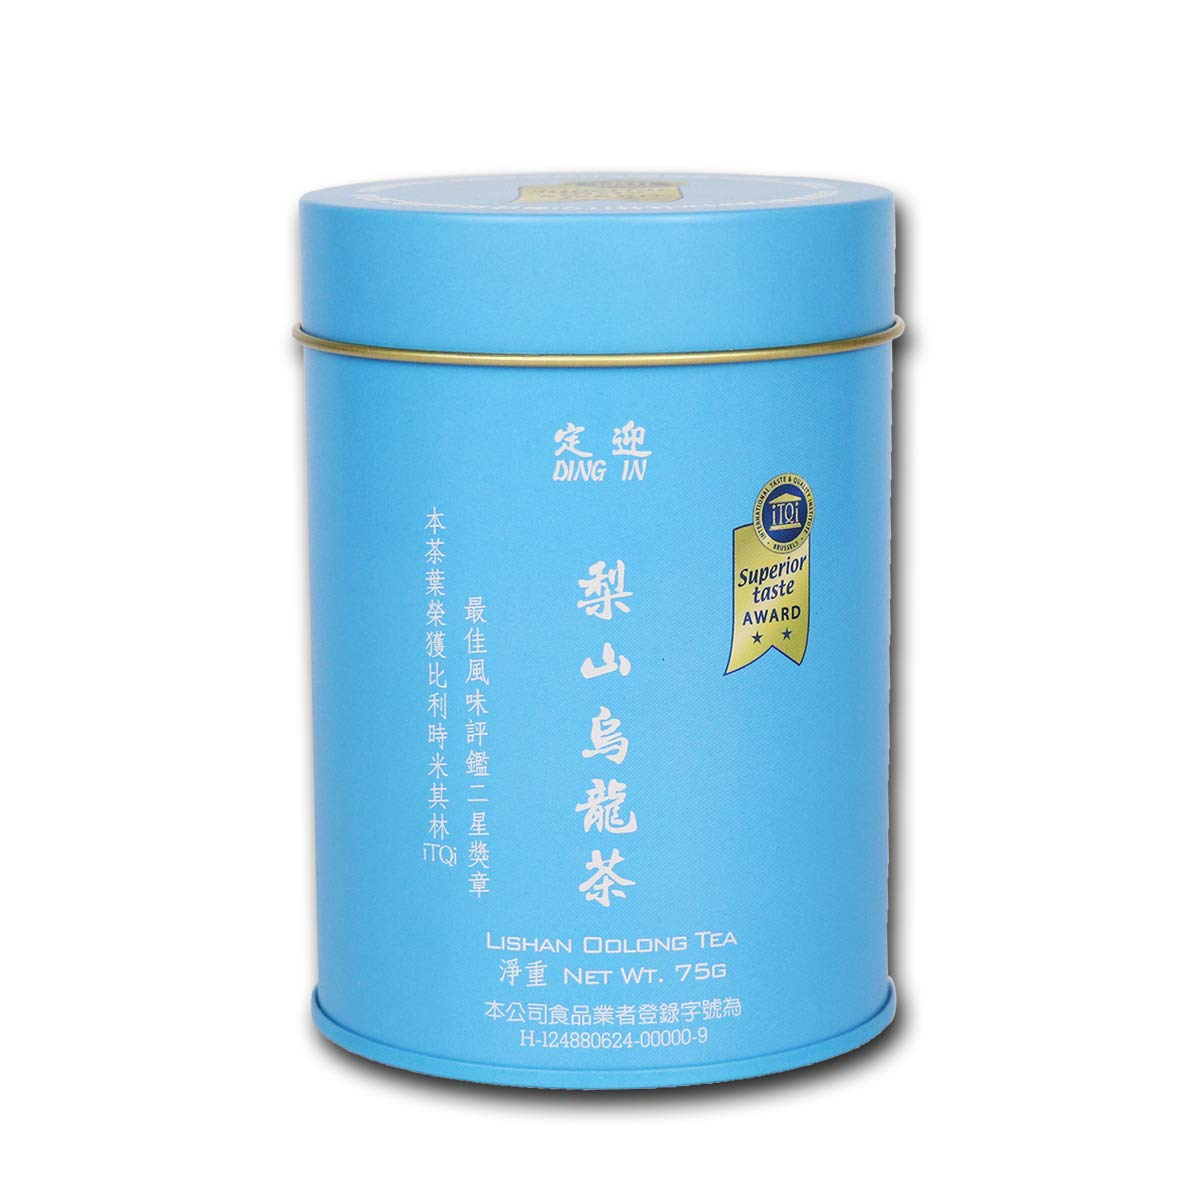 DING IN Lishan Oolong Tea 75g/can by Ding In ltd. (Image #1)